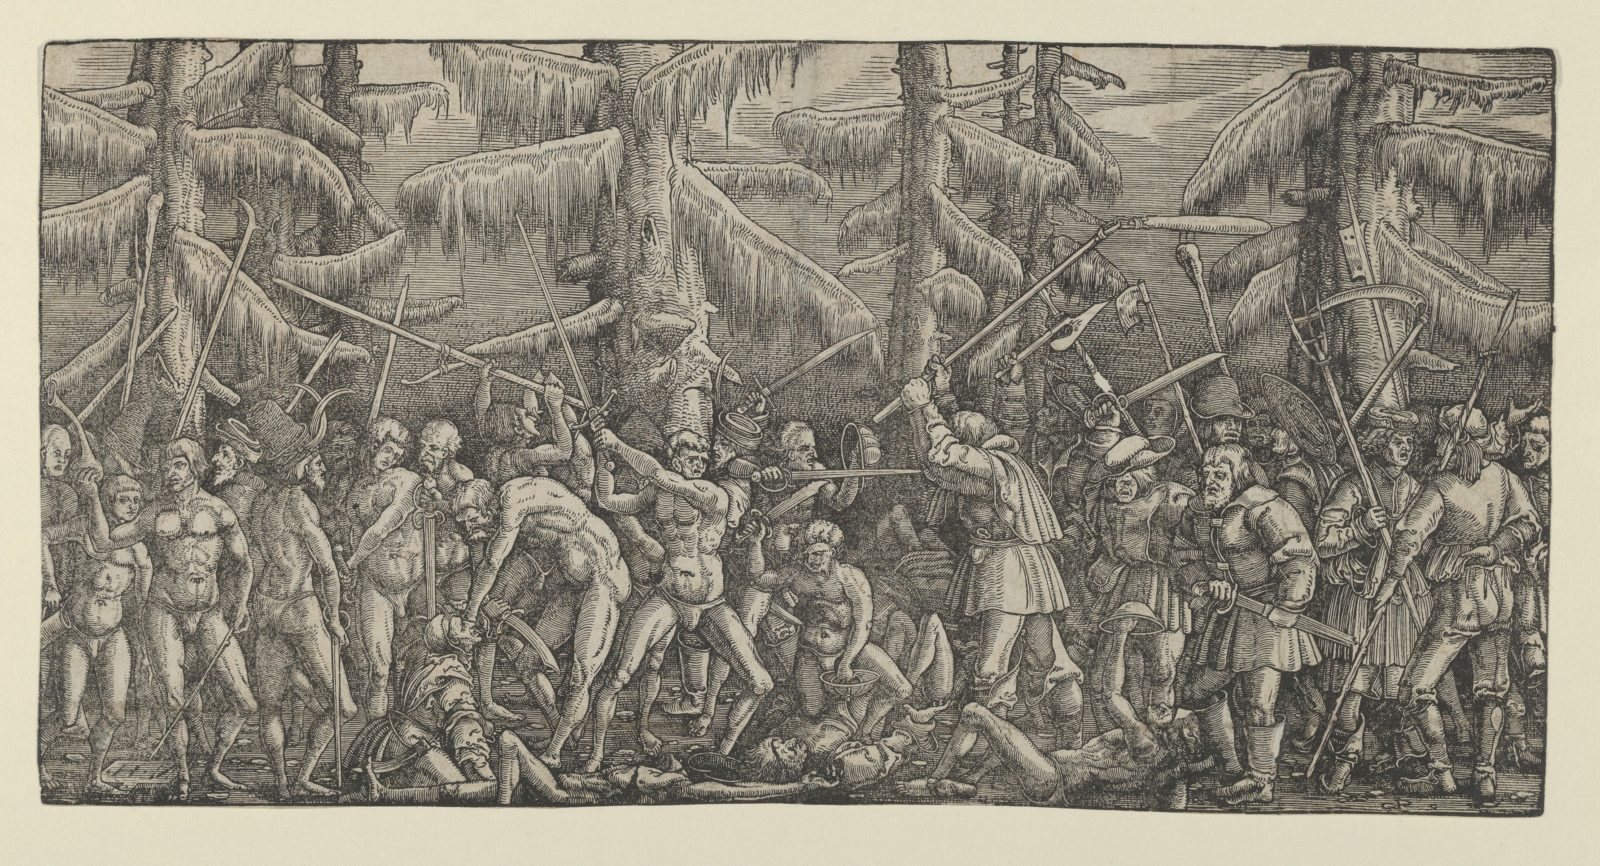 Battle Between Peasants and Naked Men in a Forest